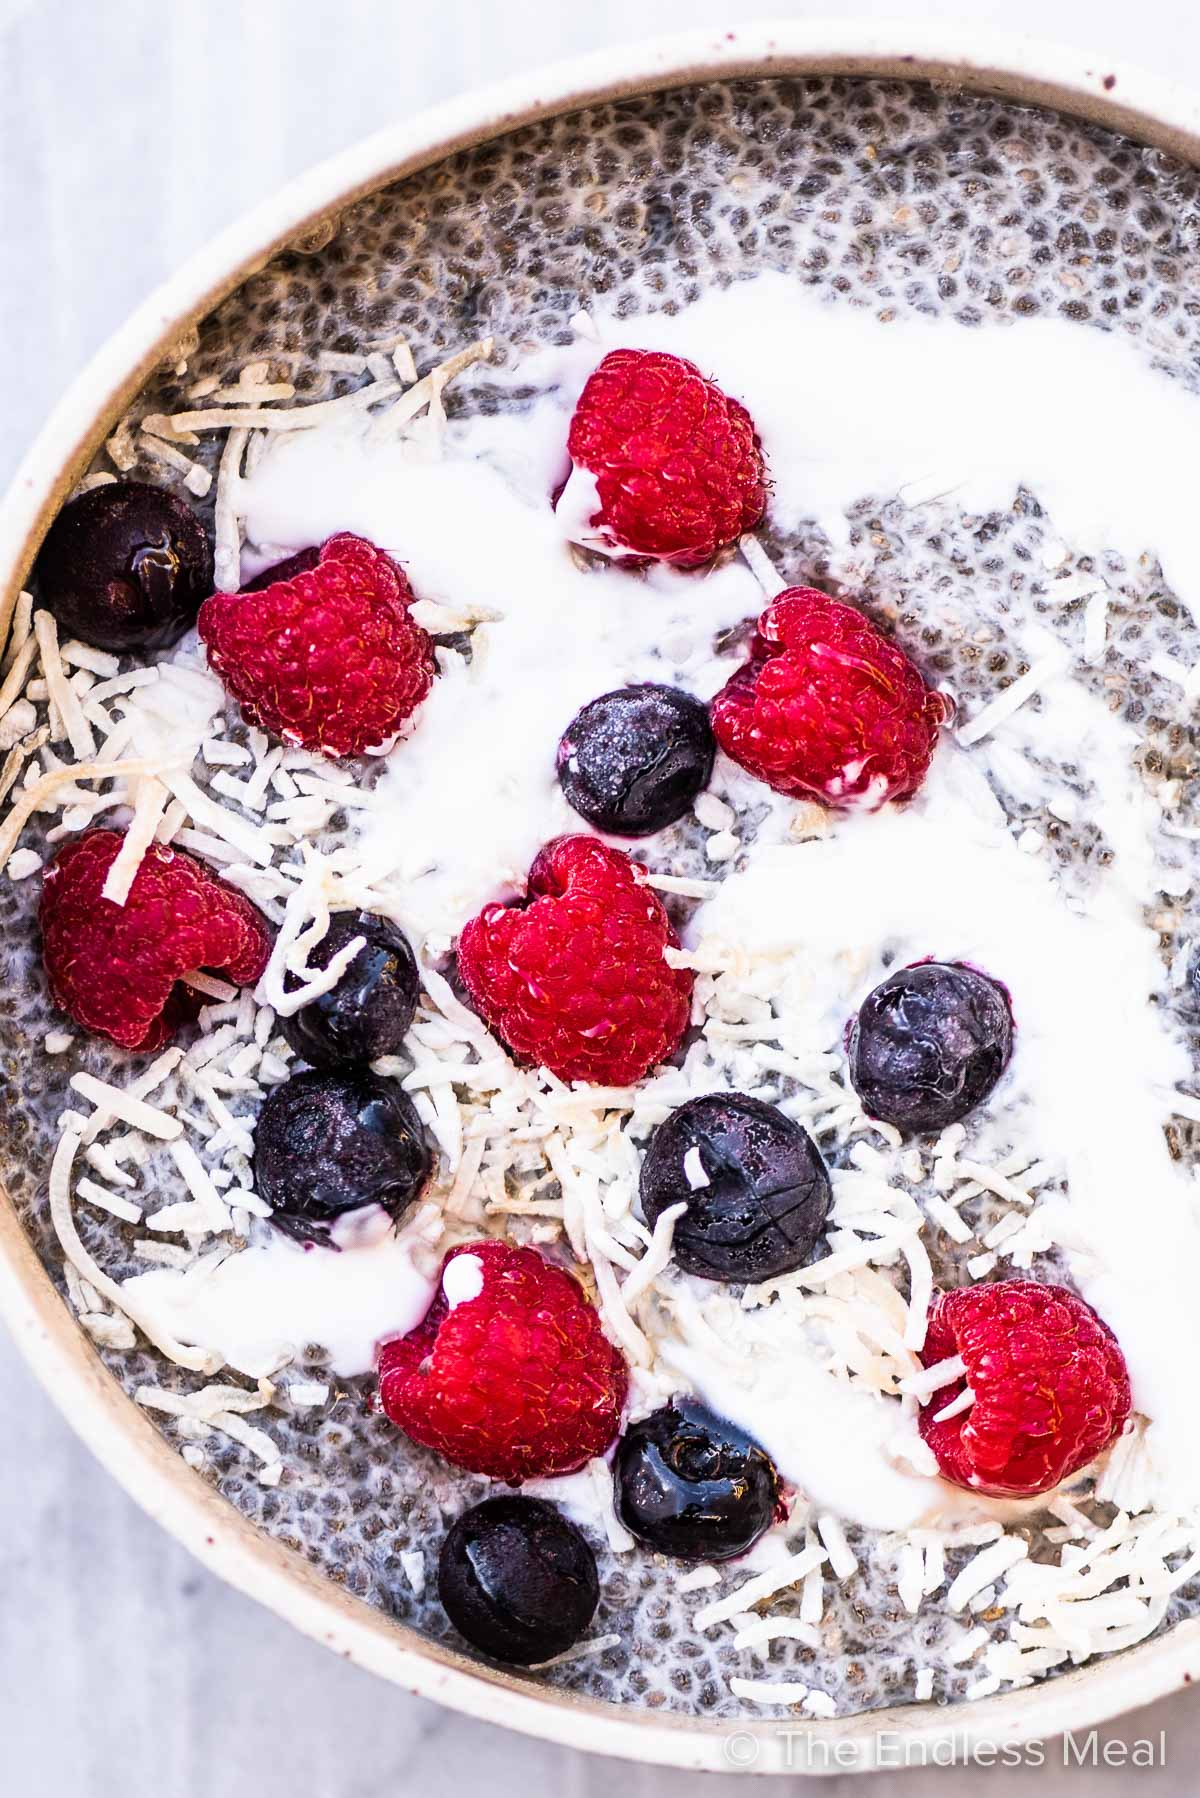 Chia seed pudding with coconut and berries in a bowl.